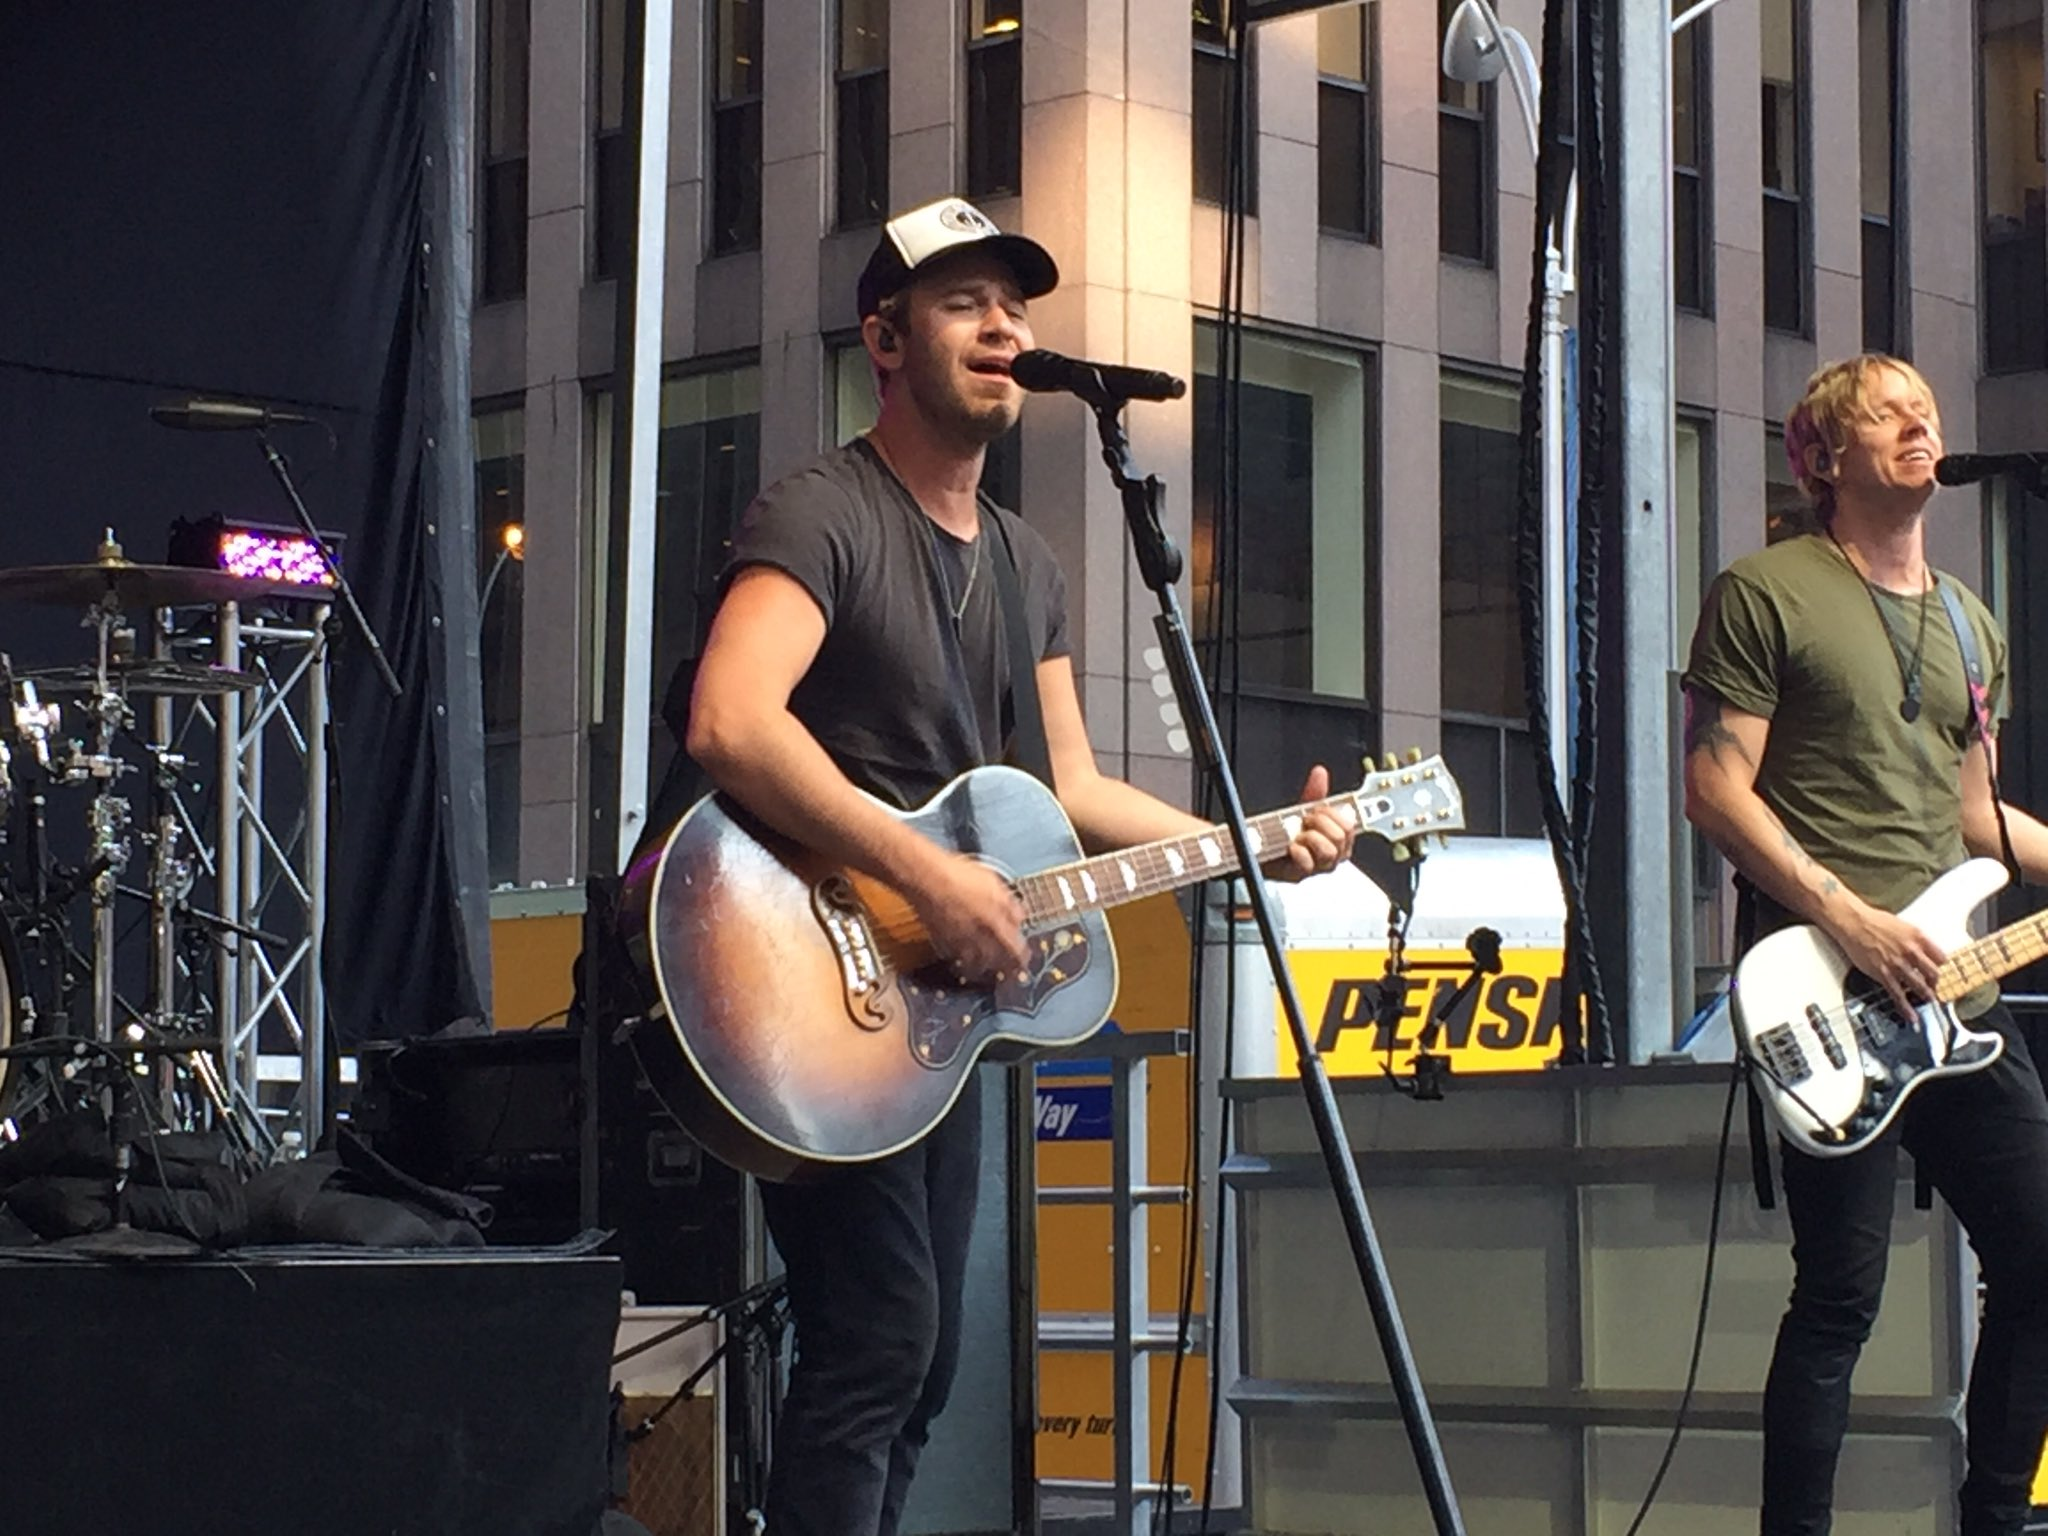 Keep watching @lifehouse! Live at https://t.co/QXCEDiSHiP #foxconcert https://t.co/661eejCAUH